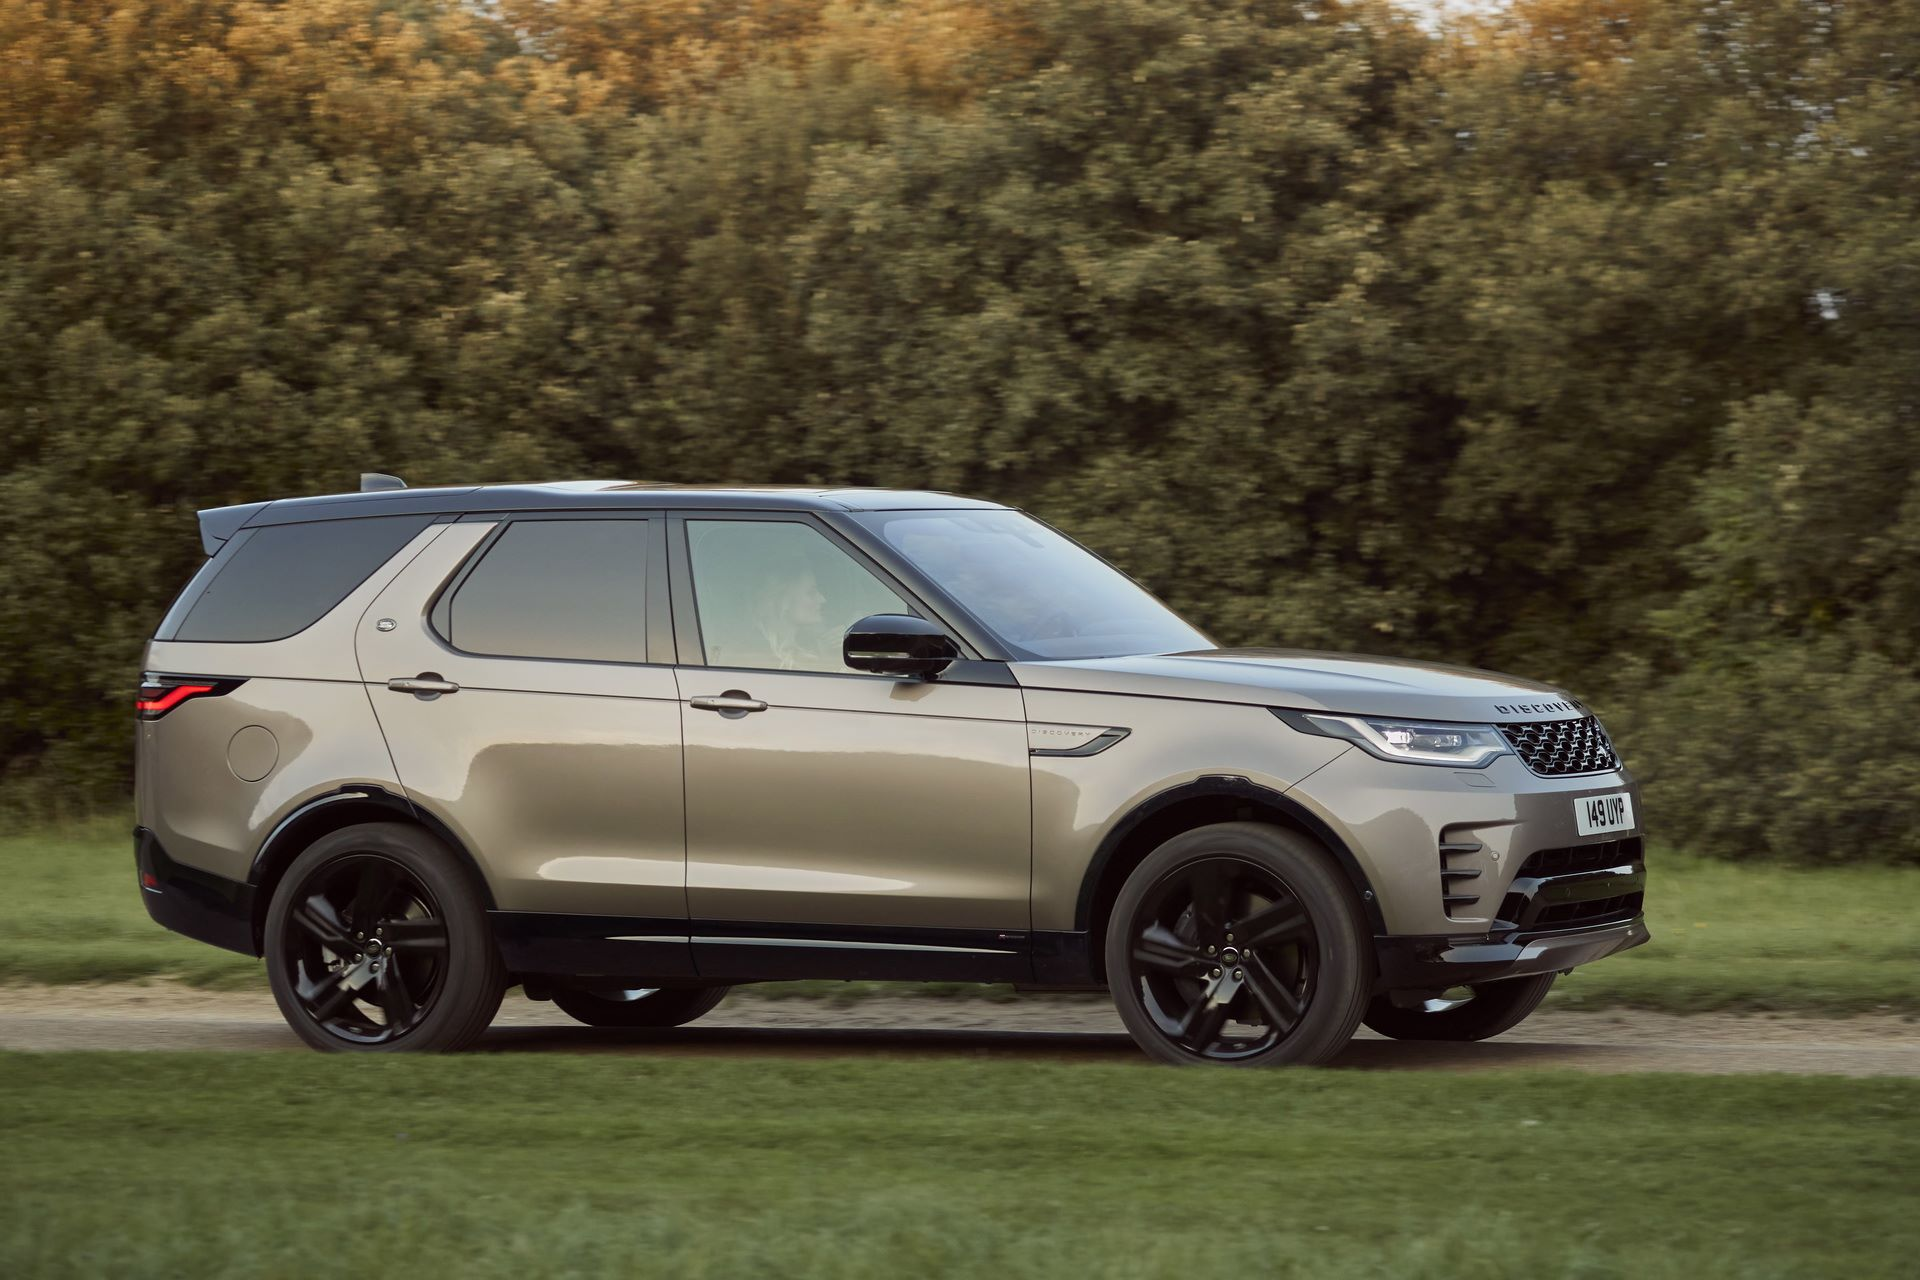 2021-Land-Rover-Discovery-21-1